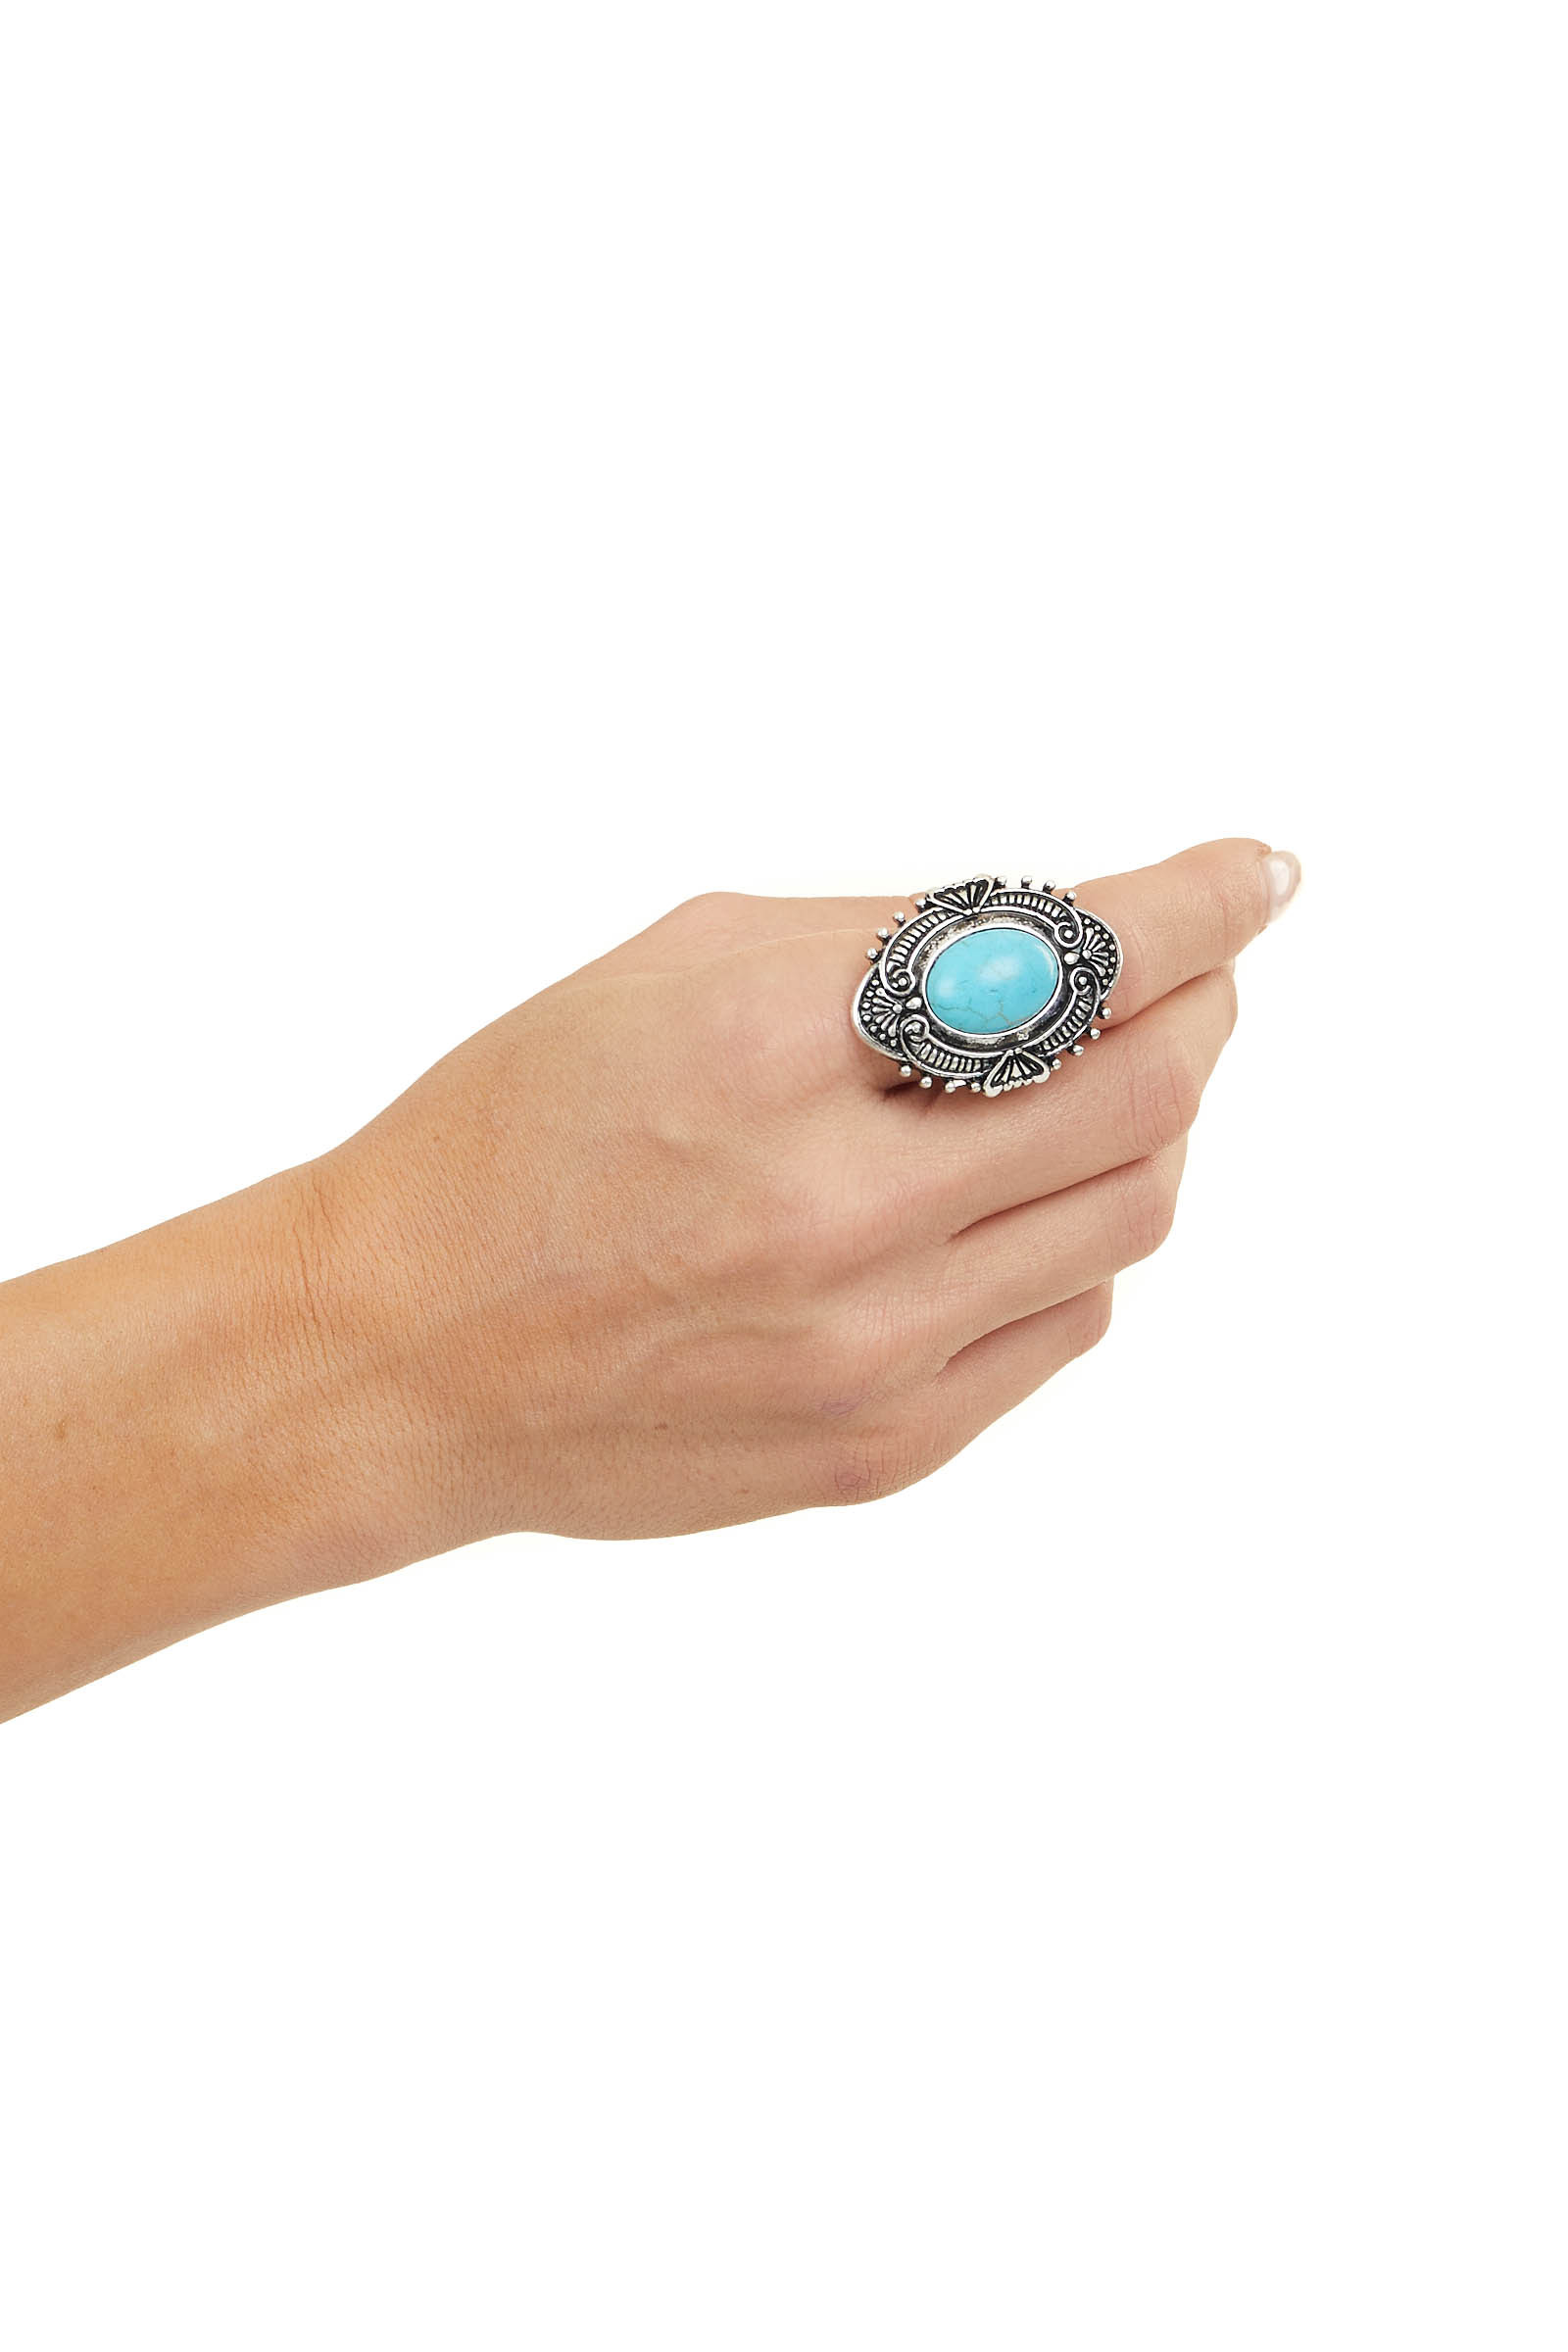 Antique Silver Adjustable Ring with Turquoise Stone Detail